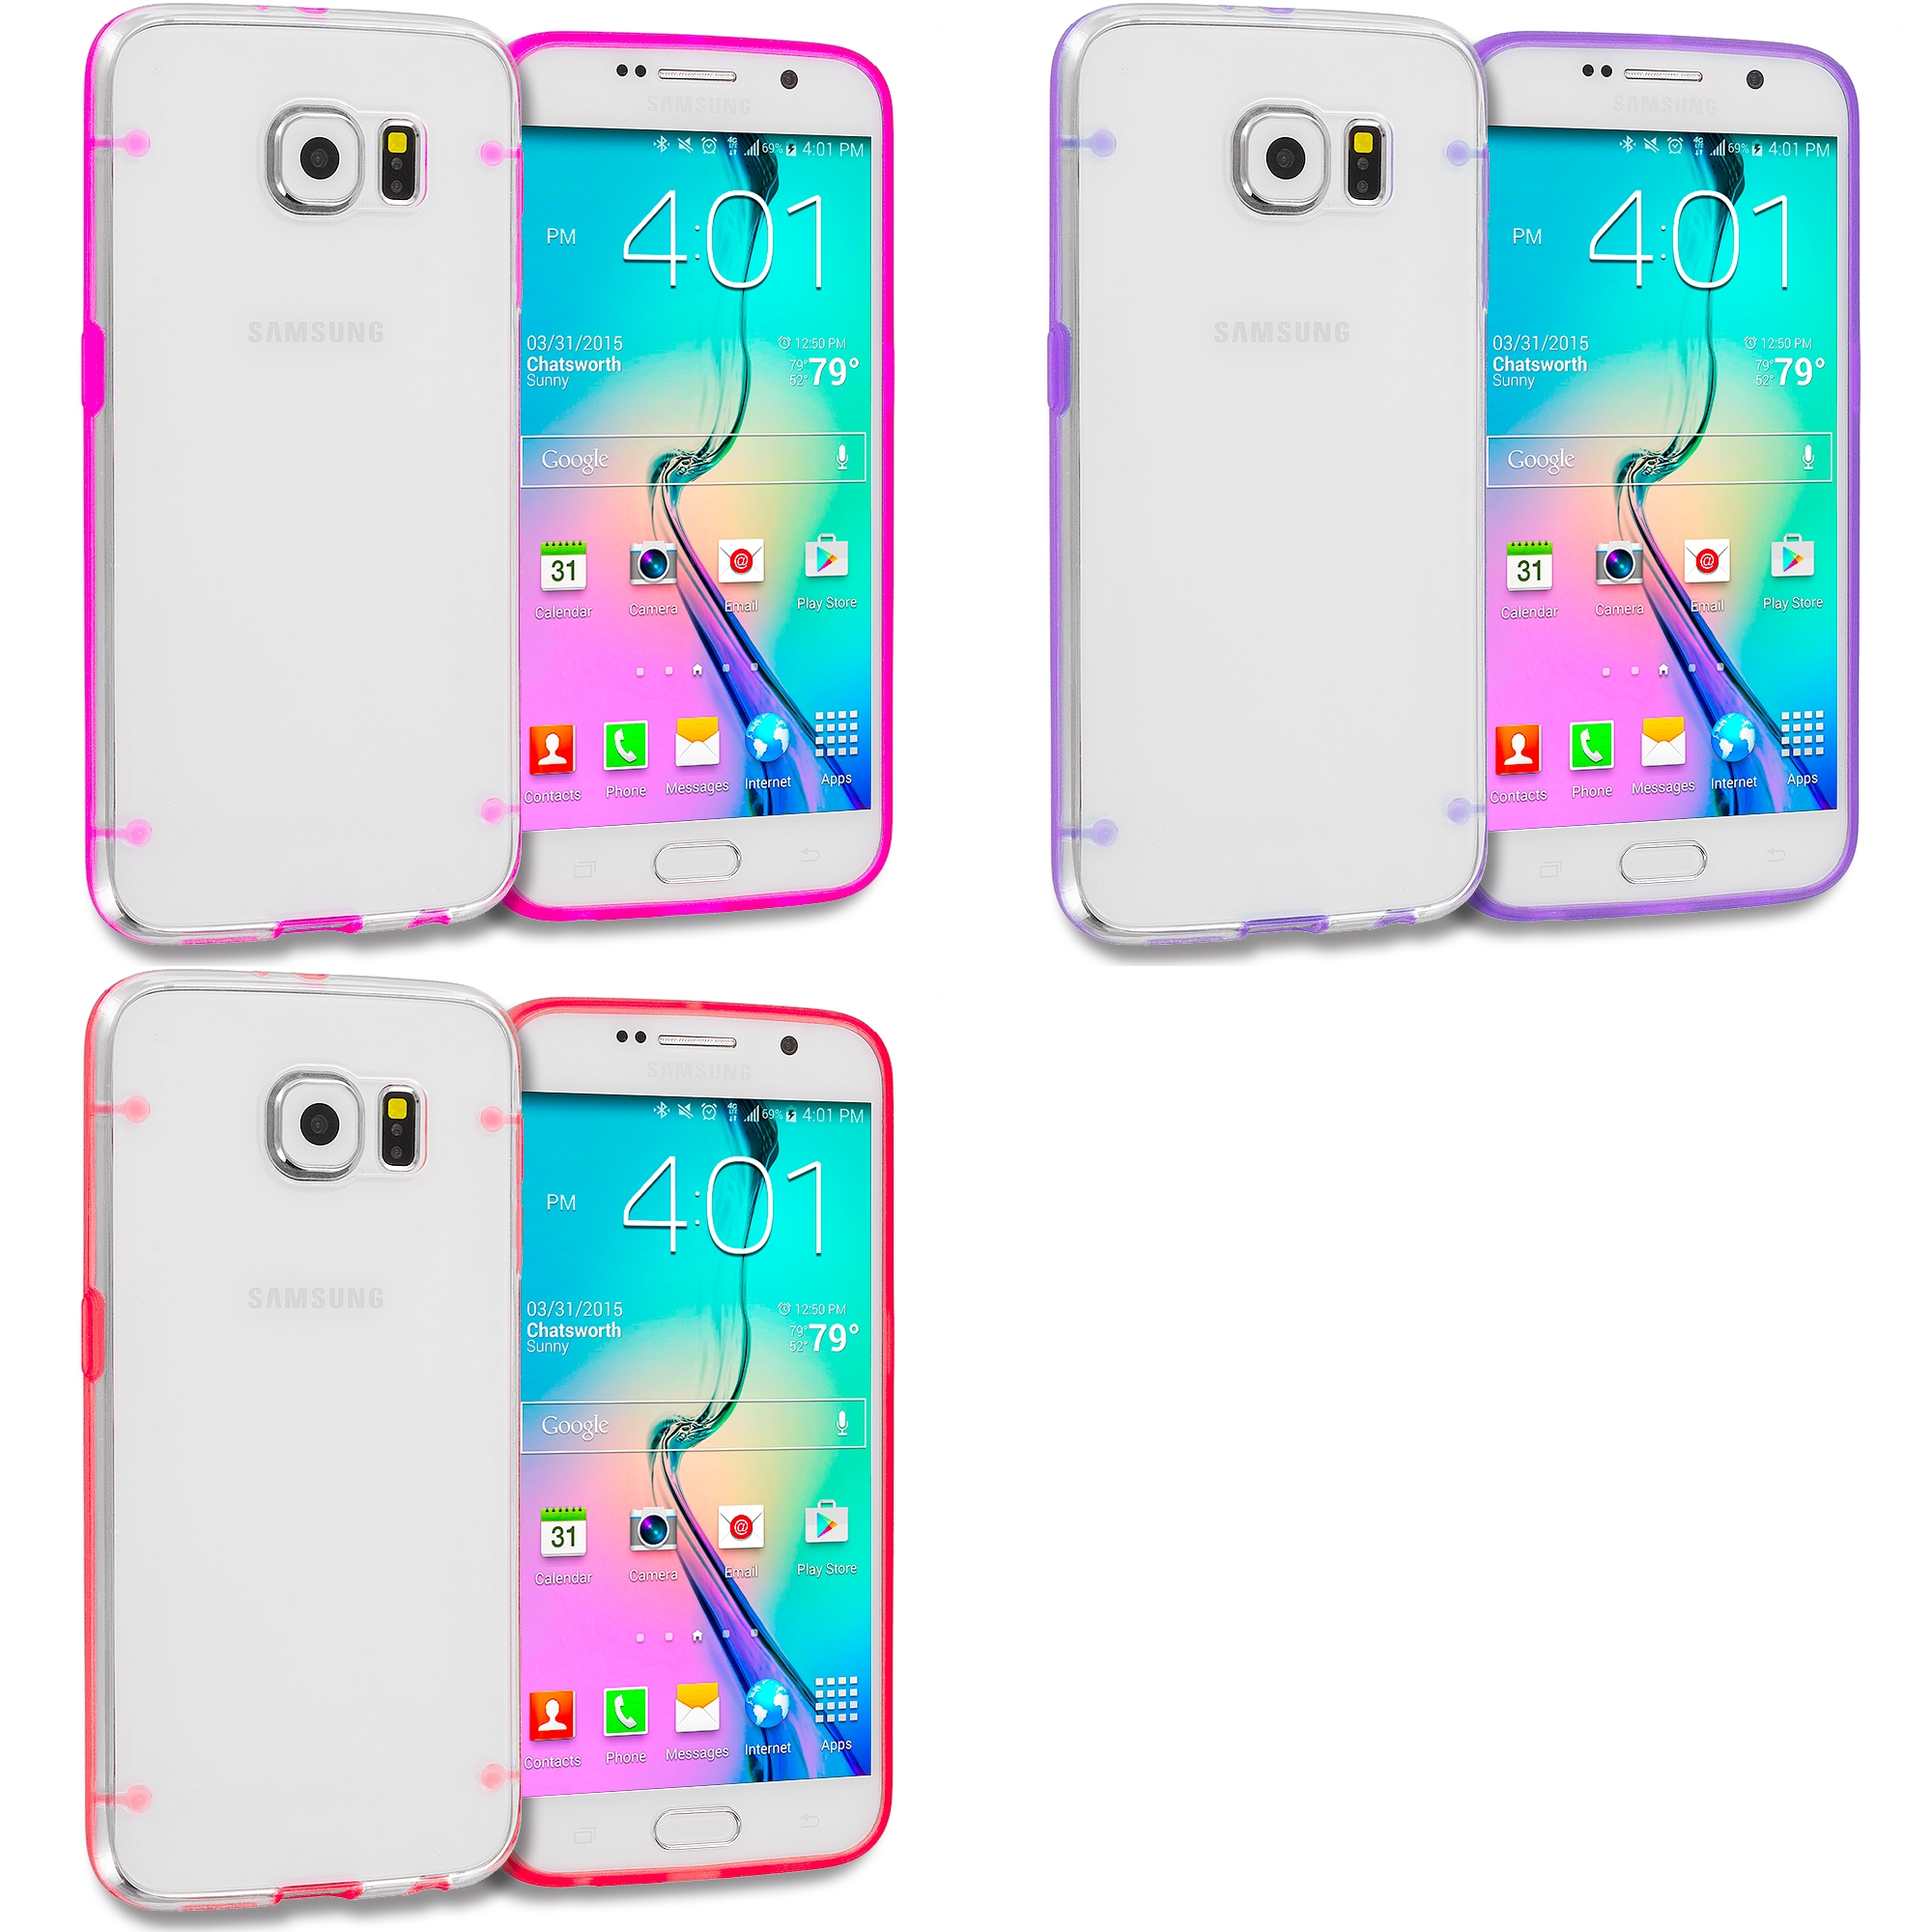 Samsung Galaxy S6 Combo Pack : Hot Pink Crystal Robot Hard TPU Case Cover